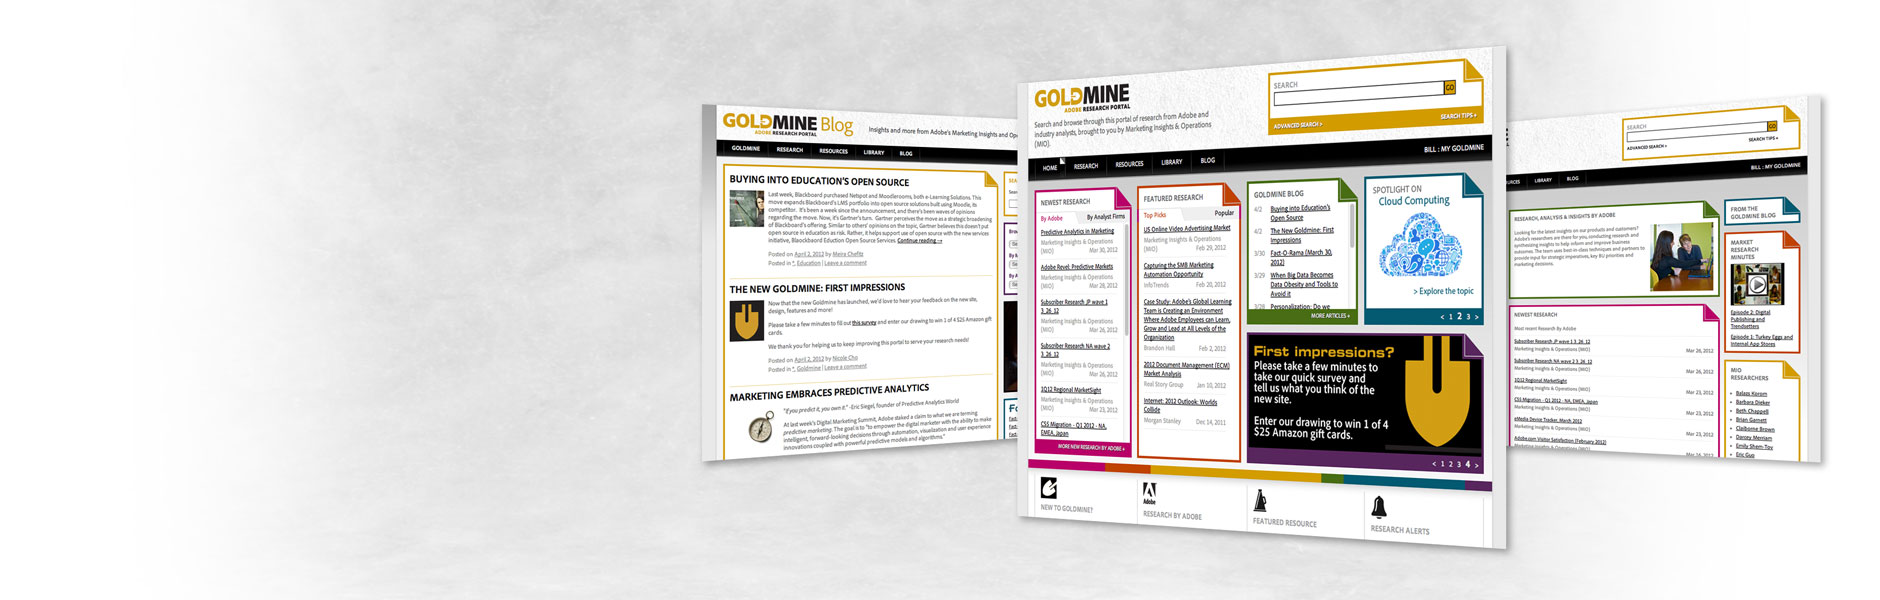 adobe-goldmine-intranet